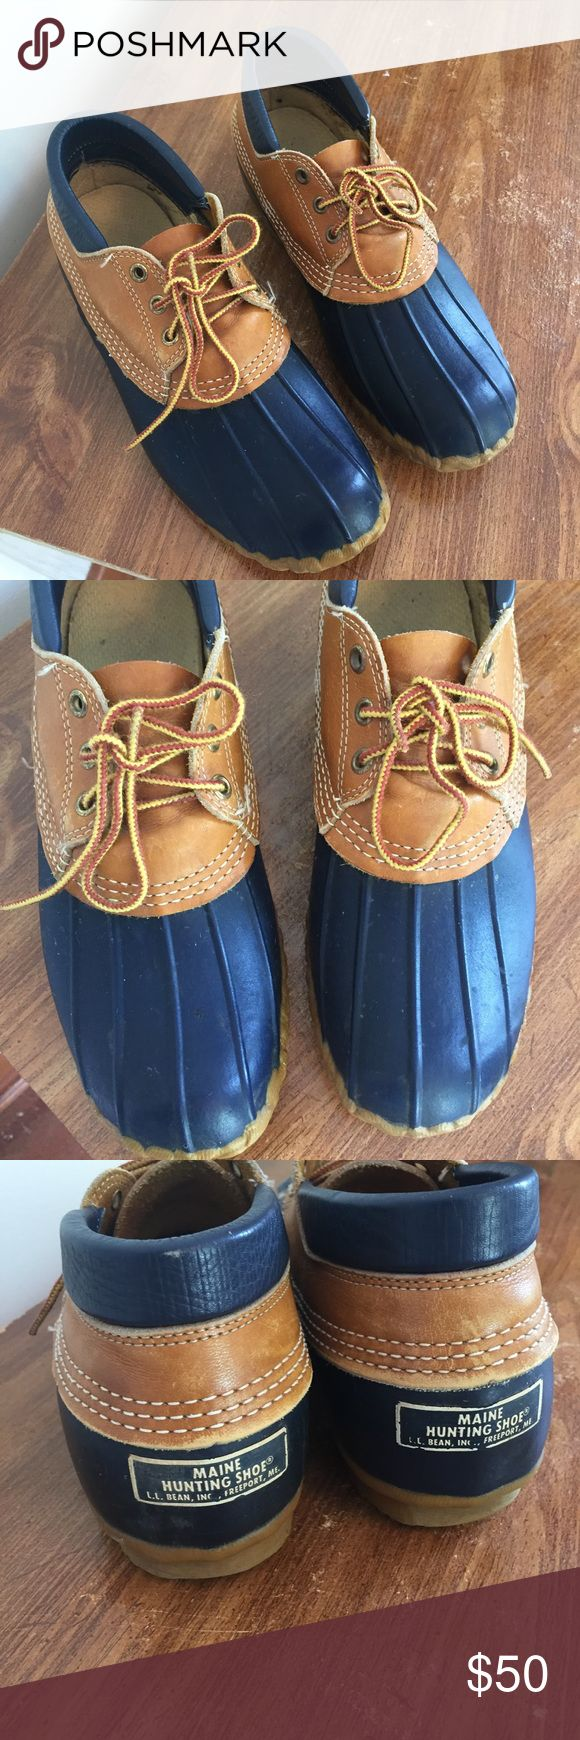 Classic L.L. Bean Duck Shoe Maine Hunting shoes. Super classic and practical. Make an offer and bundle and save! L.L. Bean Shoes Winter & Rain Boots